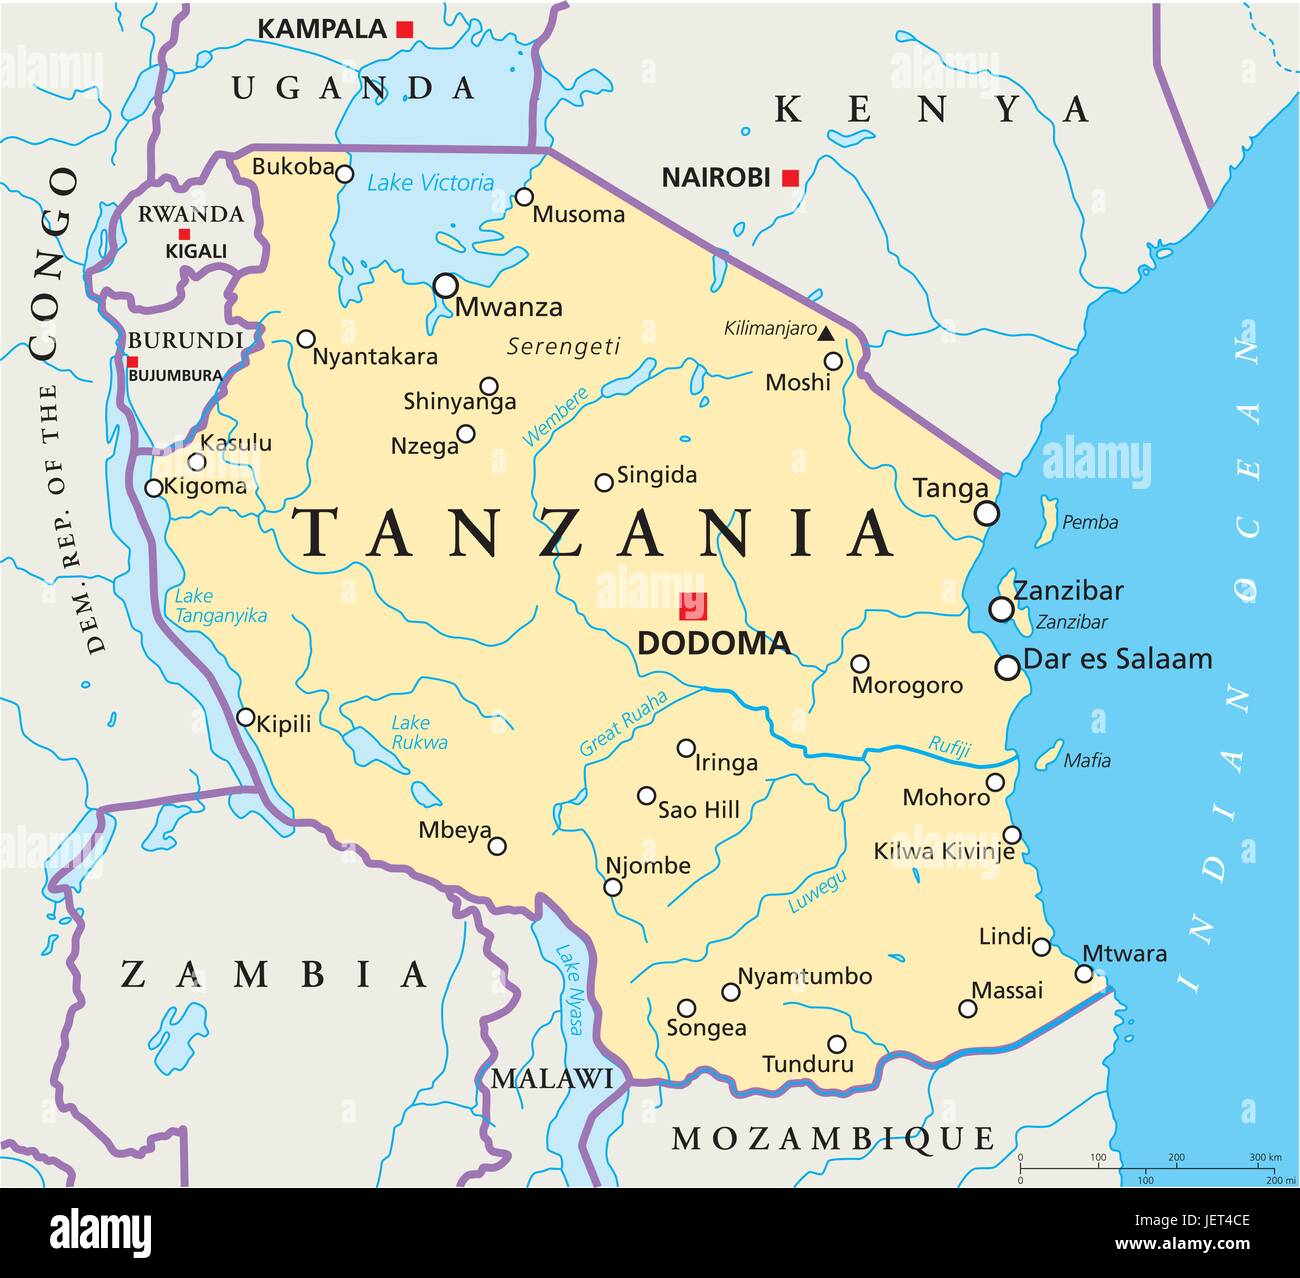 tanzania, map, atlas, map of the world, africa, kenya